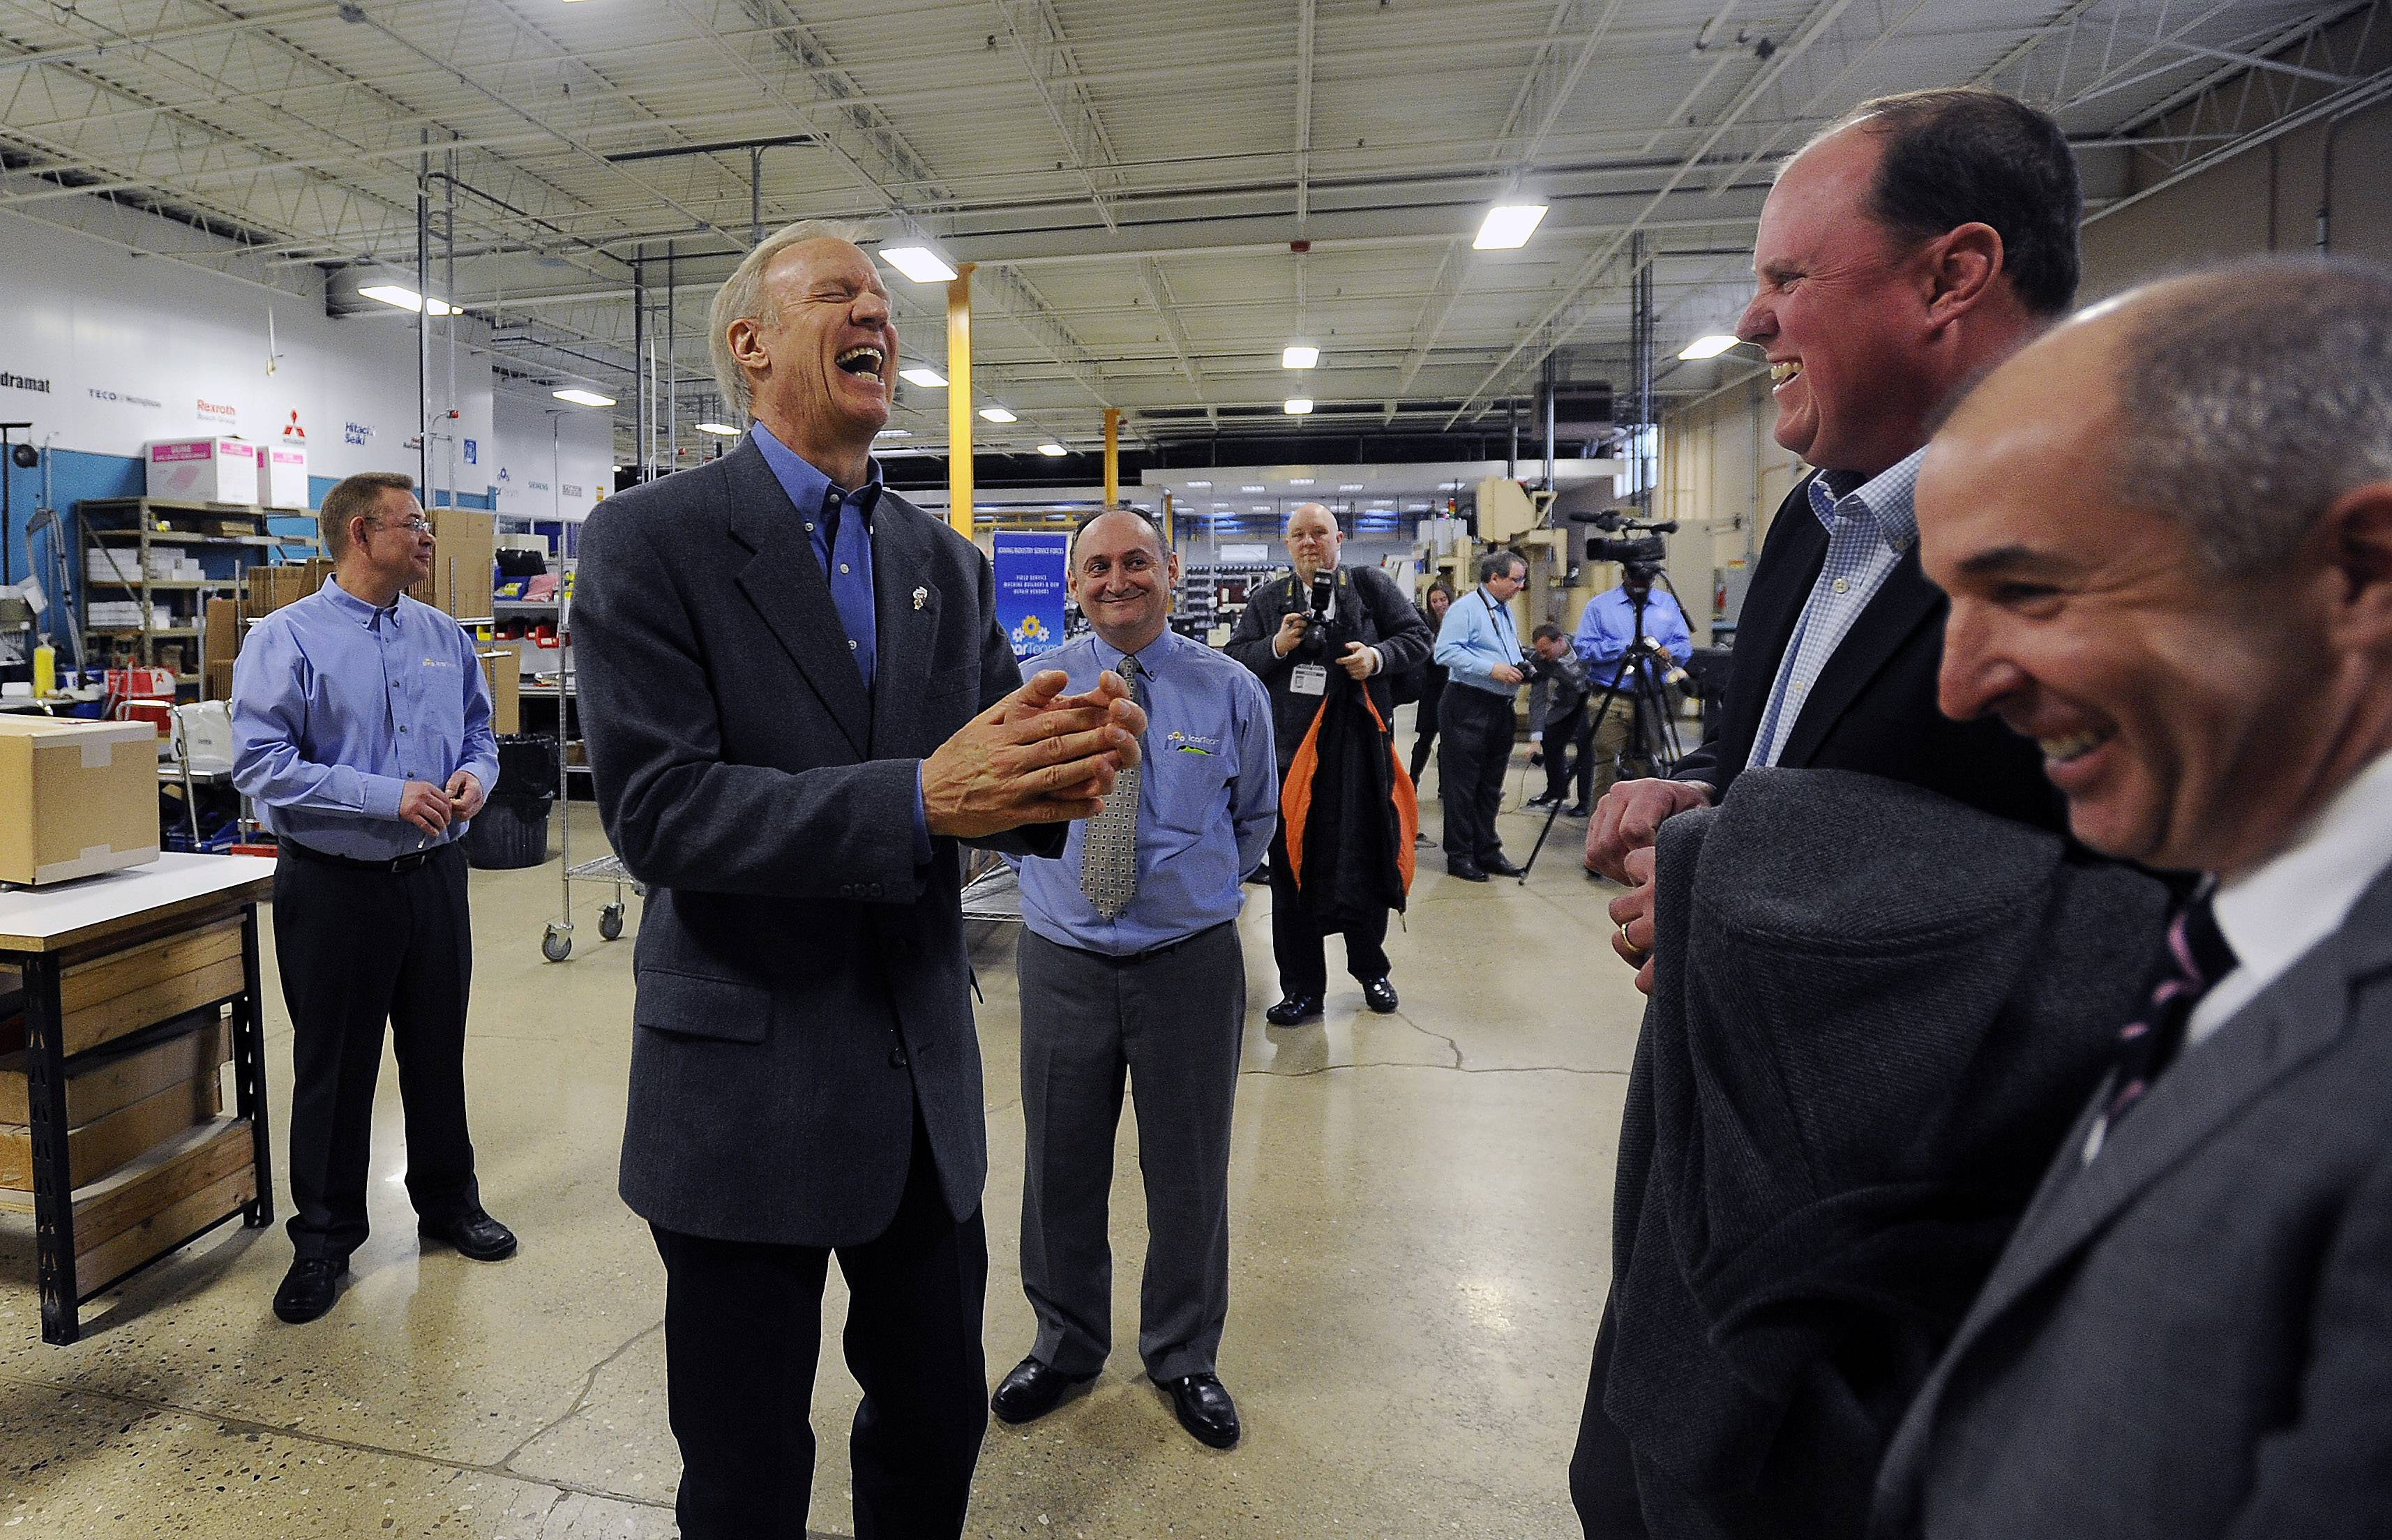 Gov. Bruce Rauner shares a laugh with suburban community and business leaders Monday while touring the IcarTeam facility in Wheeling before answering their questions during a town-hall meeting.